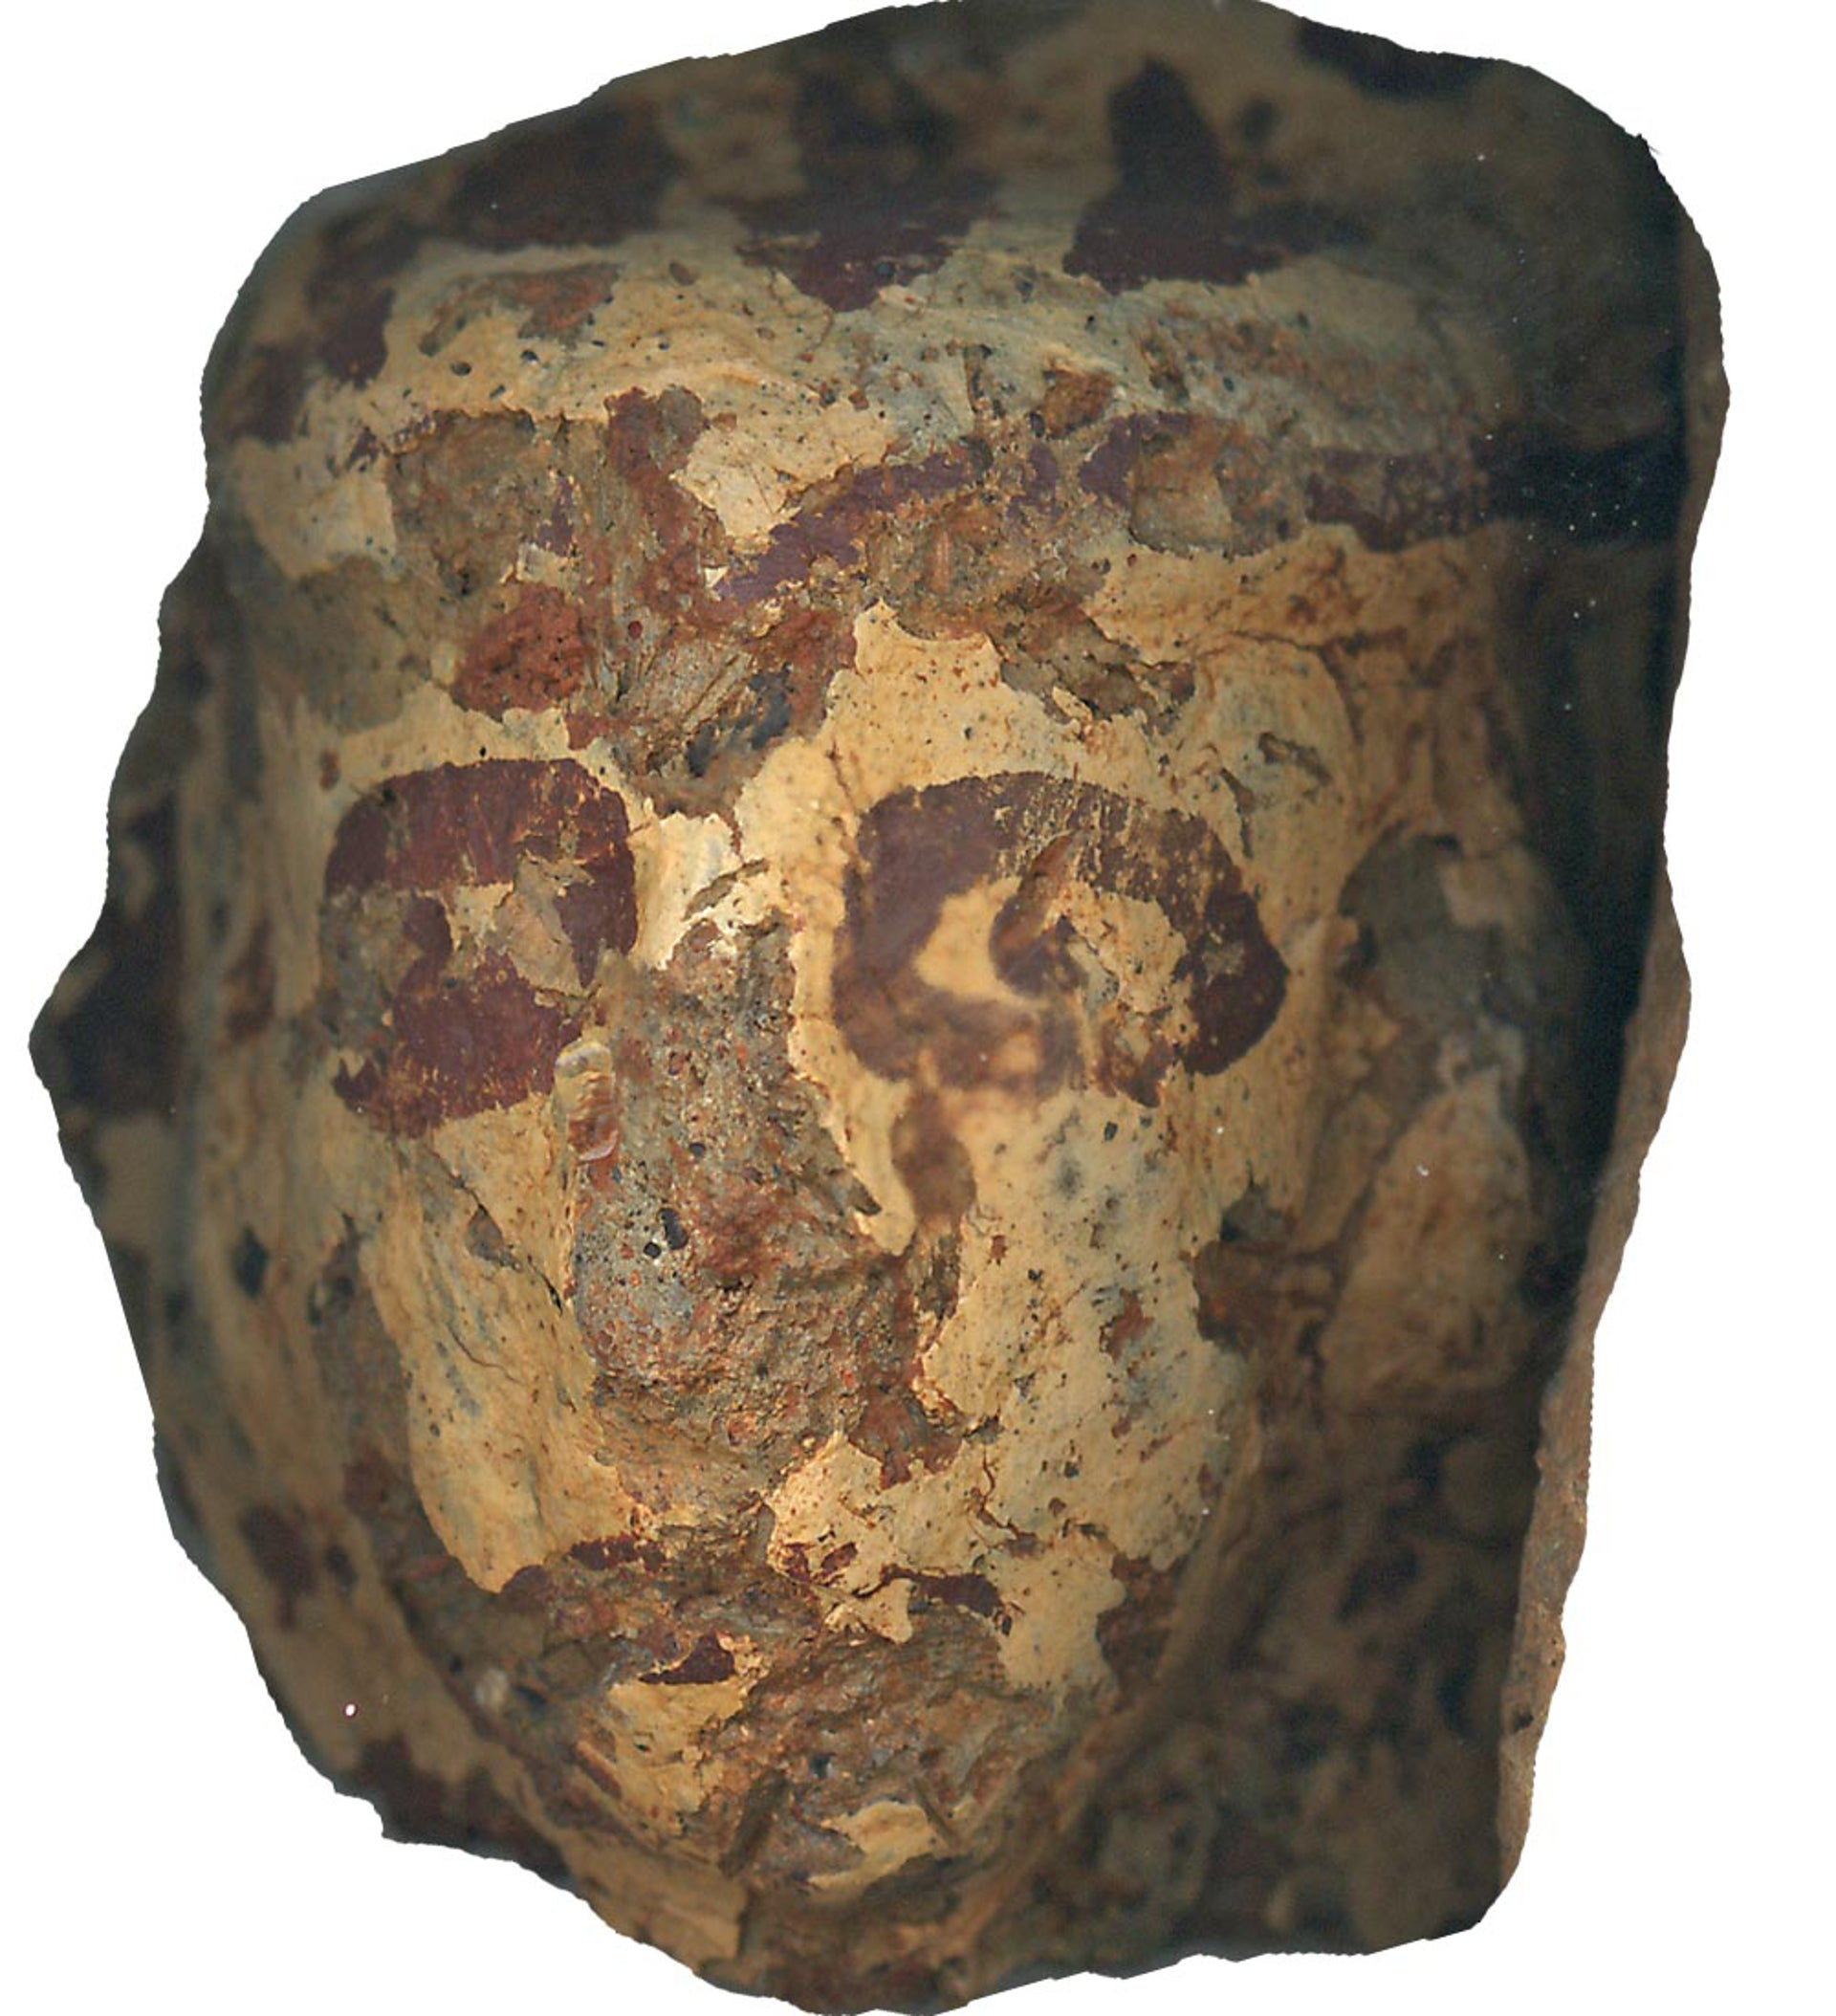 Painted face on an Aegean-style figurine discovered at Tel Dan.